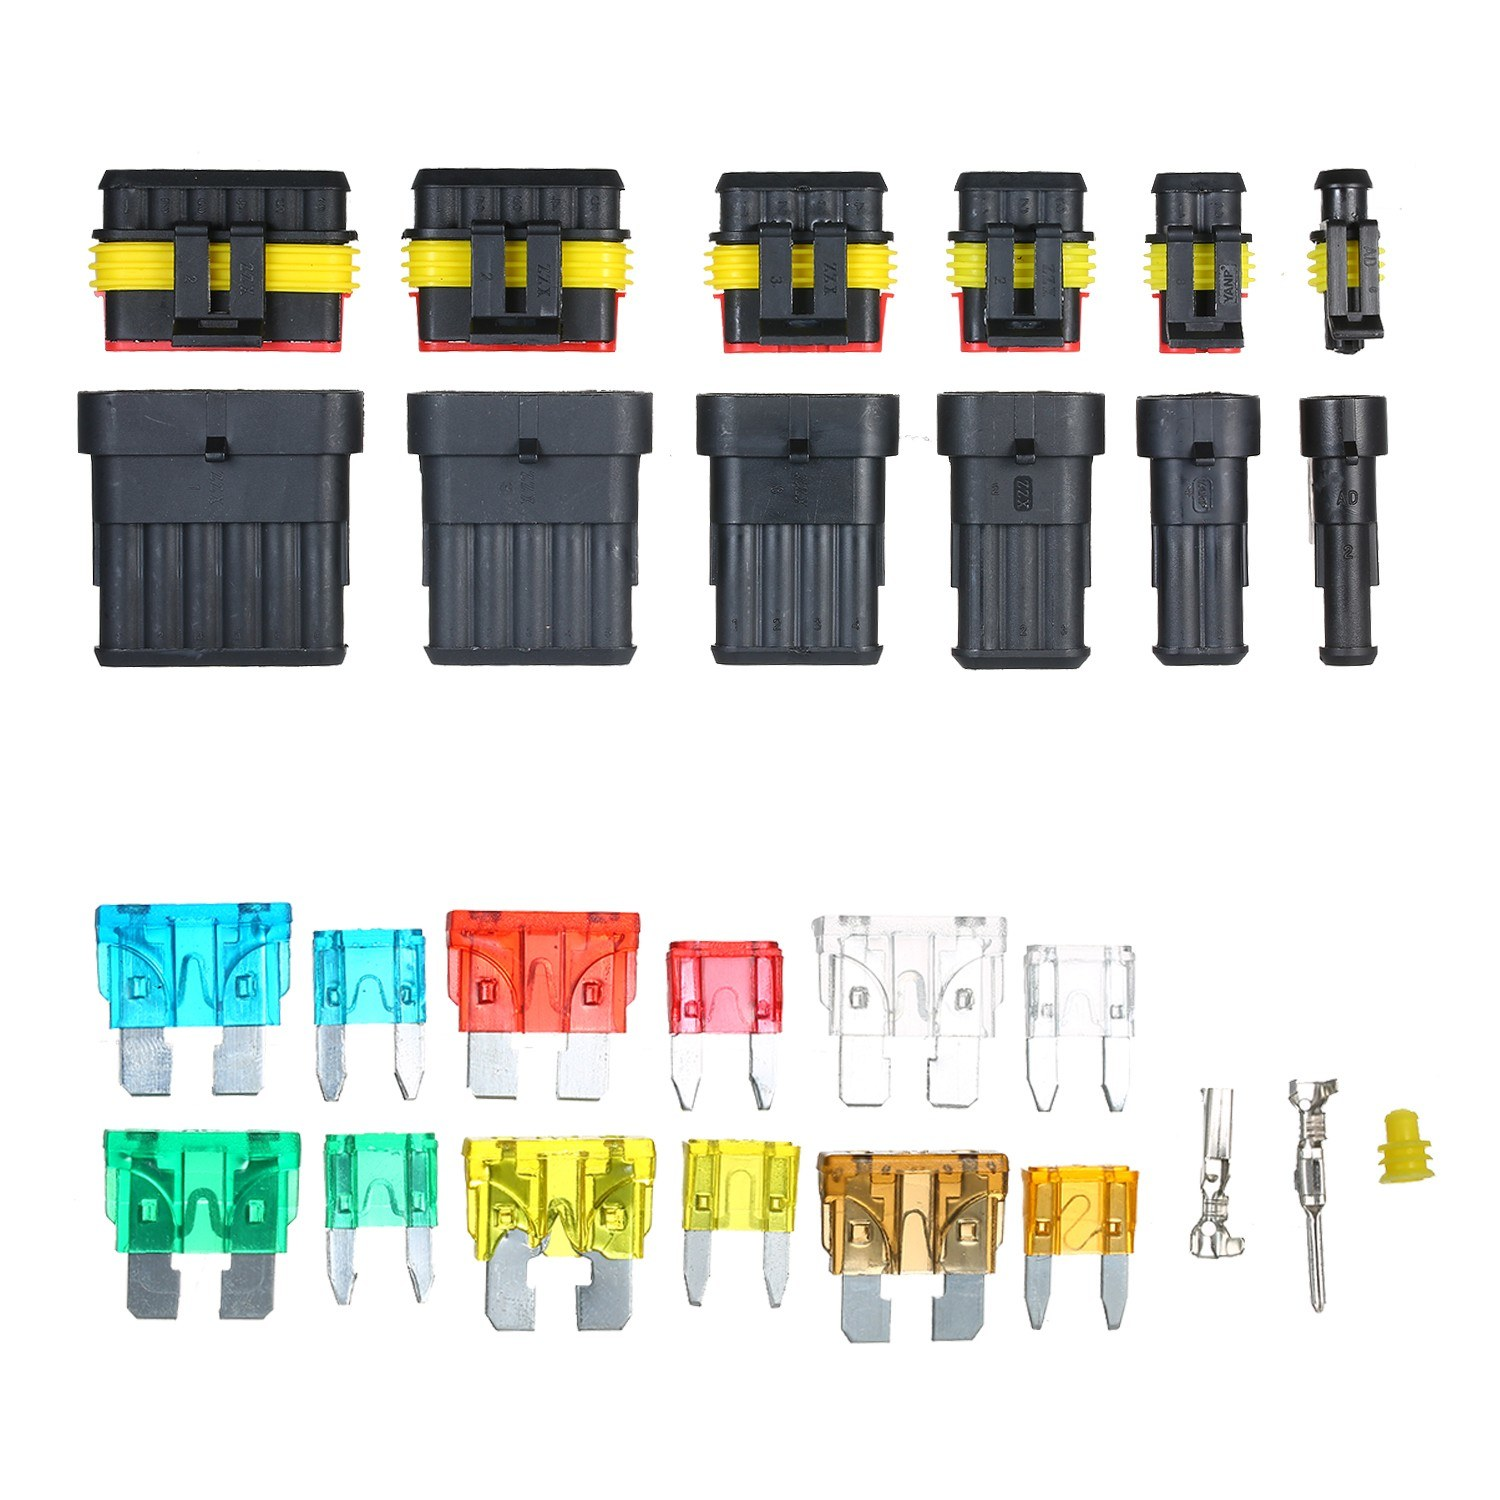 AMP1P 2P 3P 4P 5P 6P Waterproof Car Auto Electrical Wire Connector Terminal Plug with Blade Fuse Connector Plug Kit Terminal Assortment 1 2 3 4 5 6 Pin Male & Female Waterproof Connectors for Car Motorcycle Boat